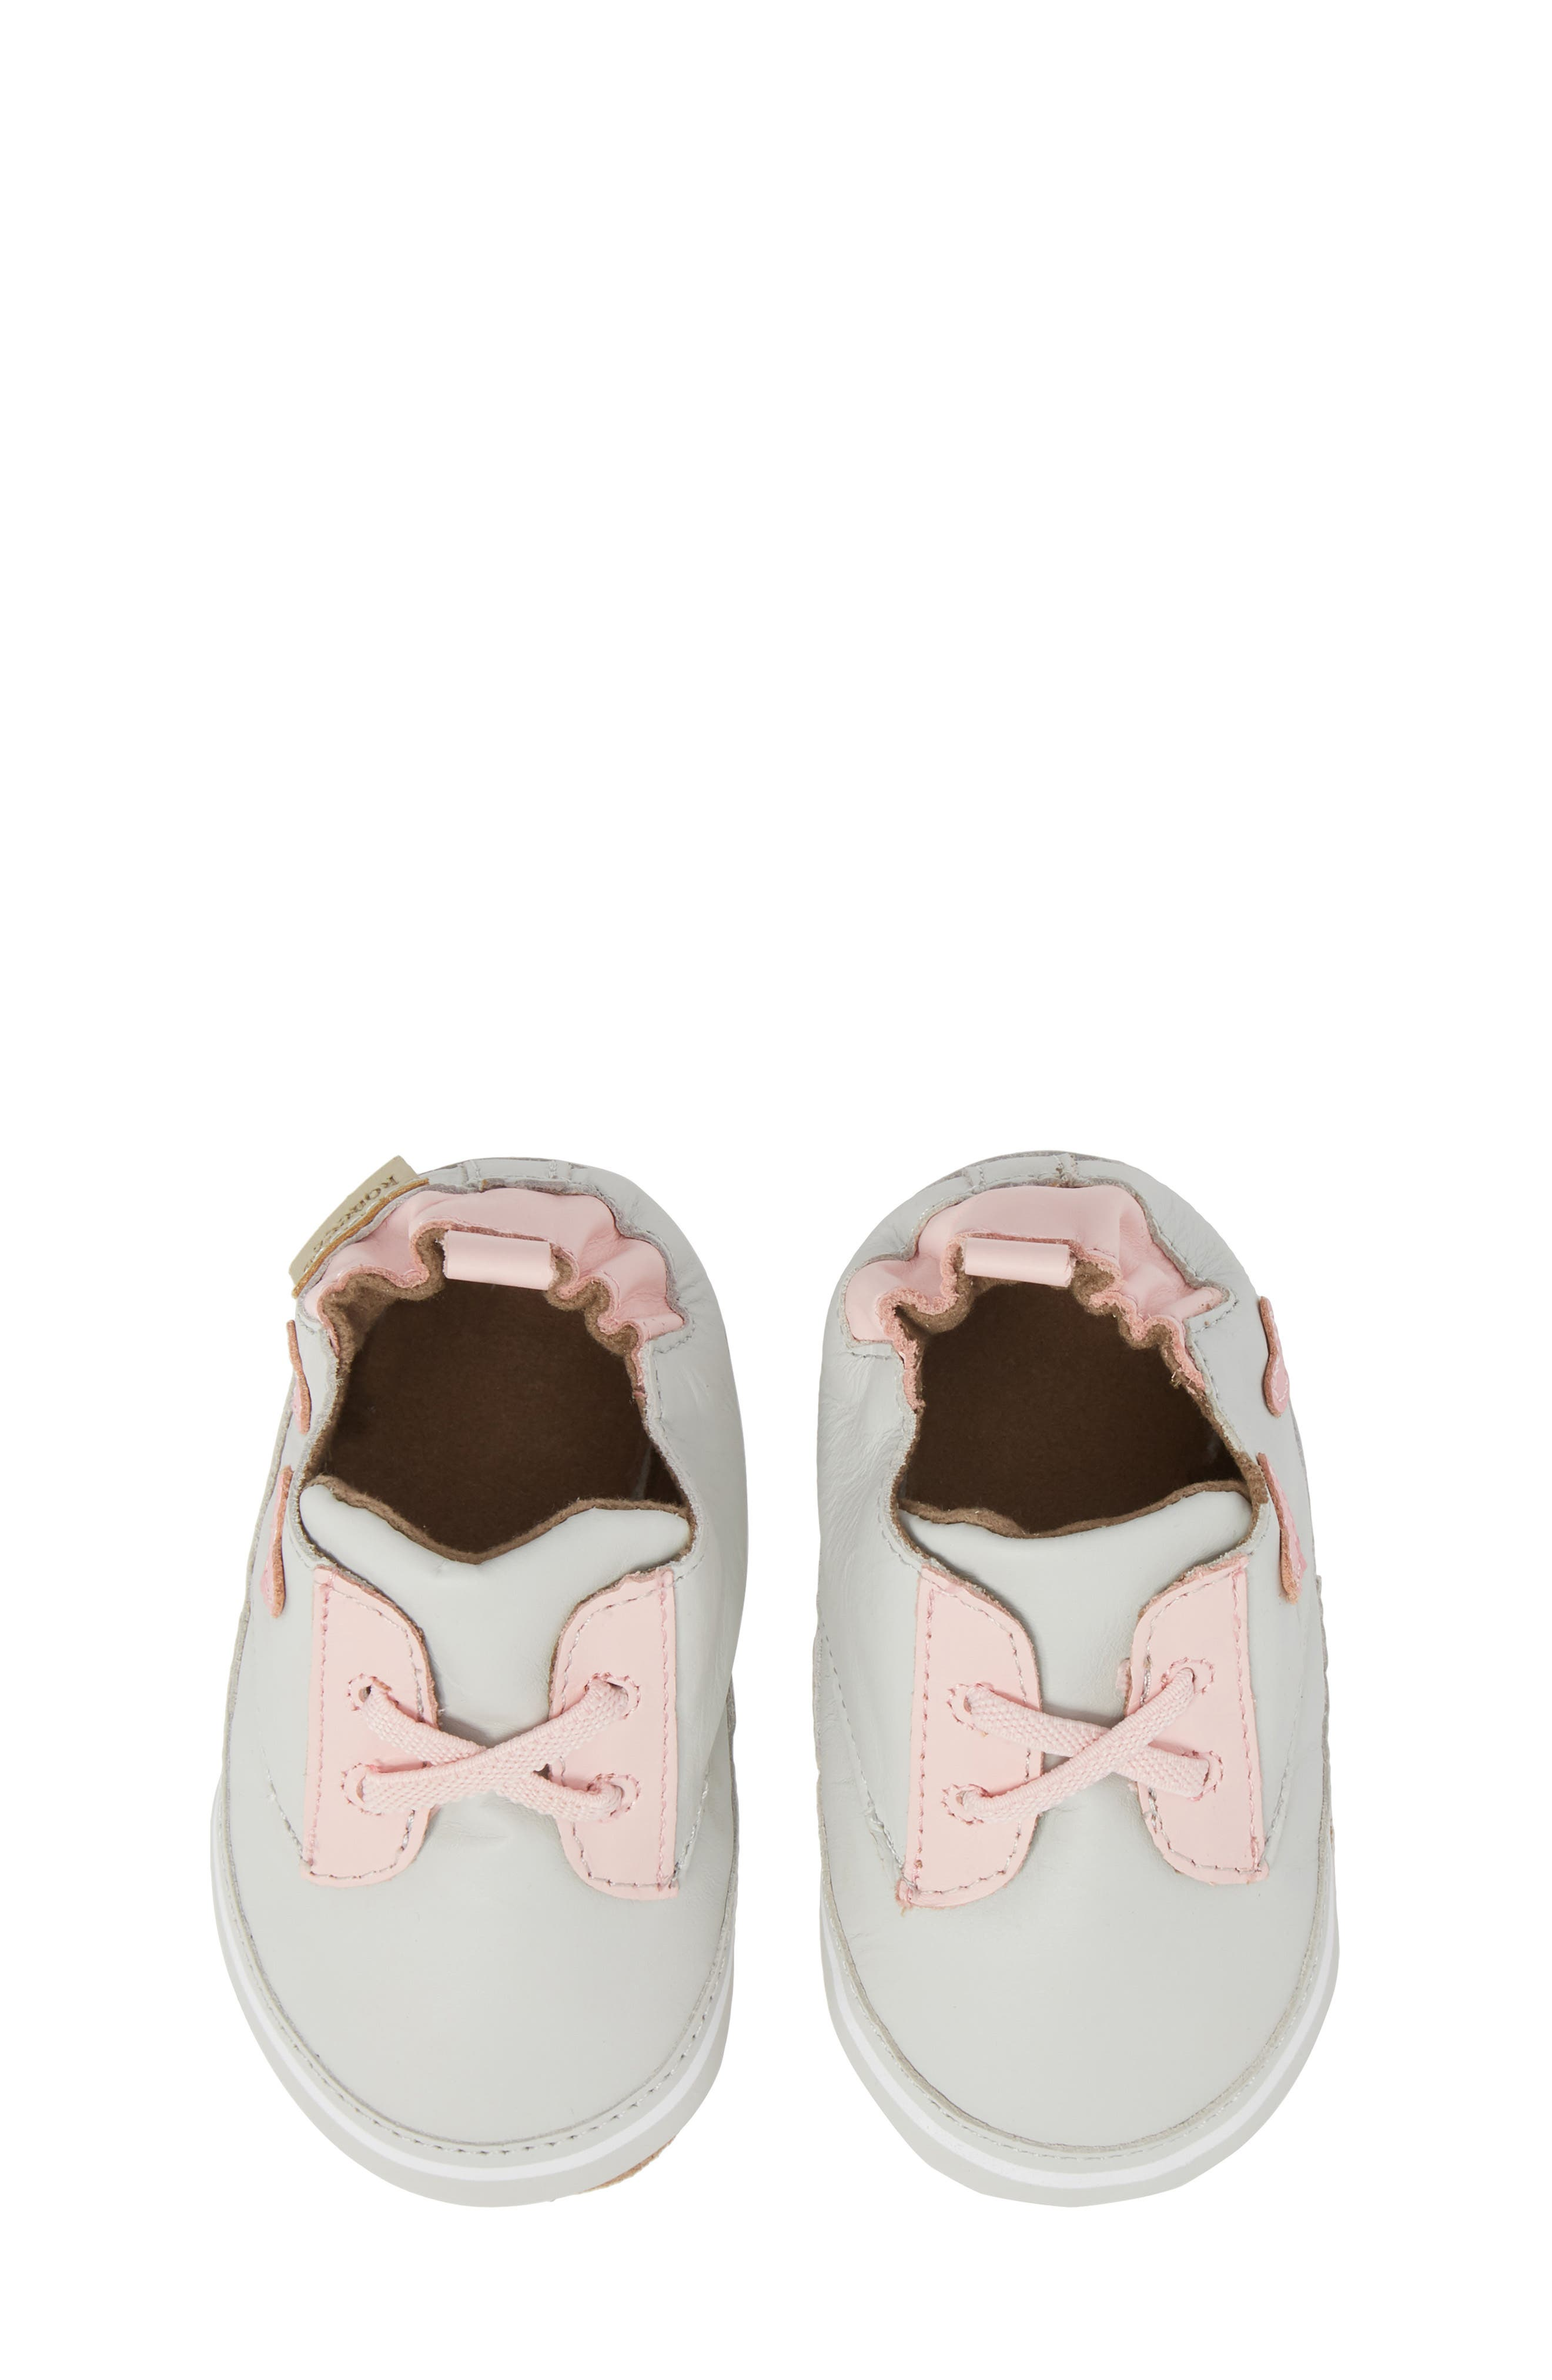 Heartbreaker Slip-On Crib Sneaker,                             Alternate thumbnail 5, color,                             055